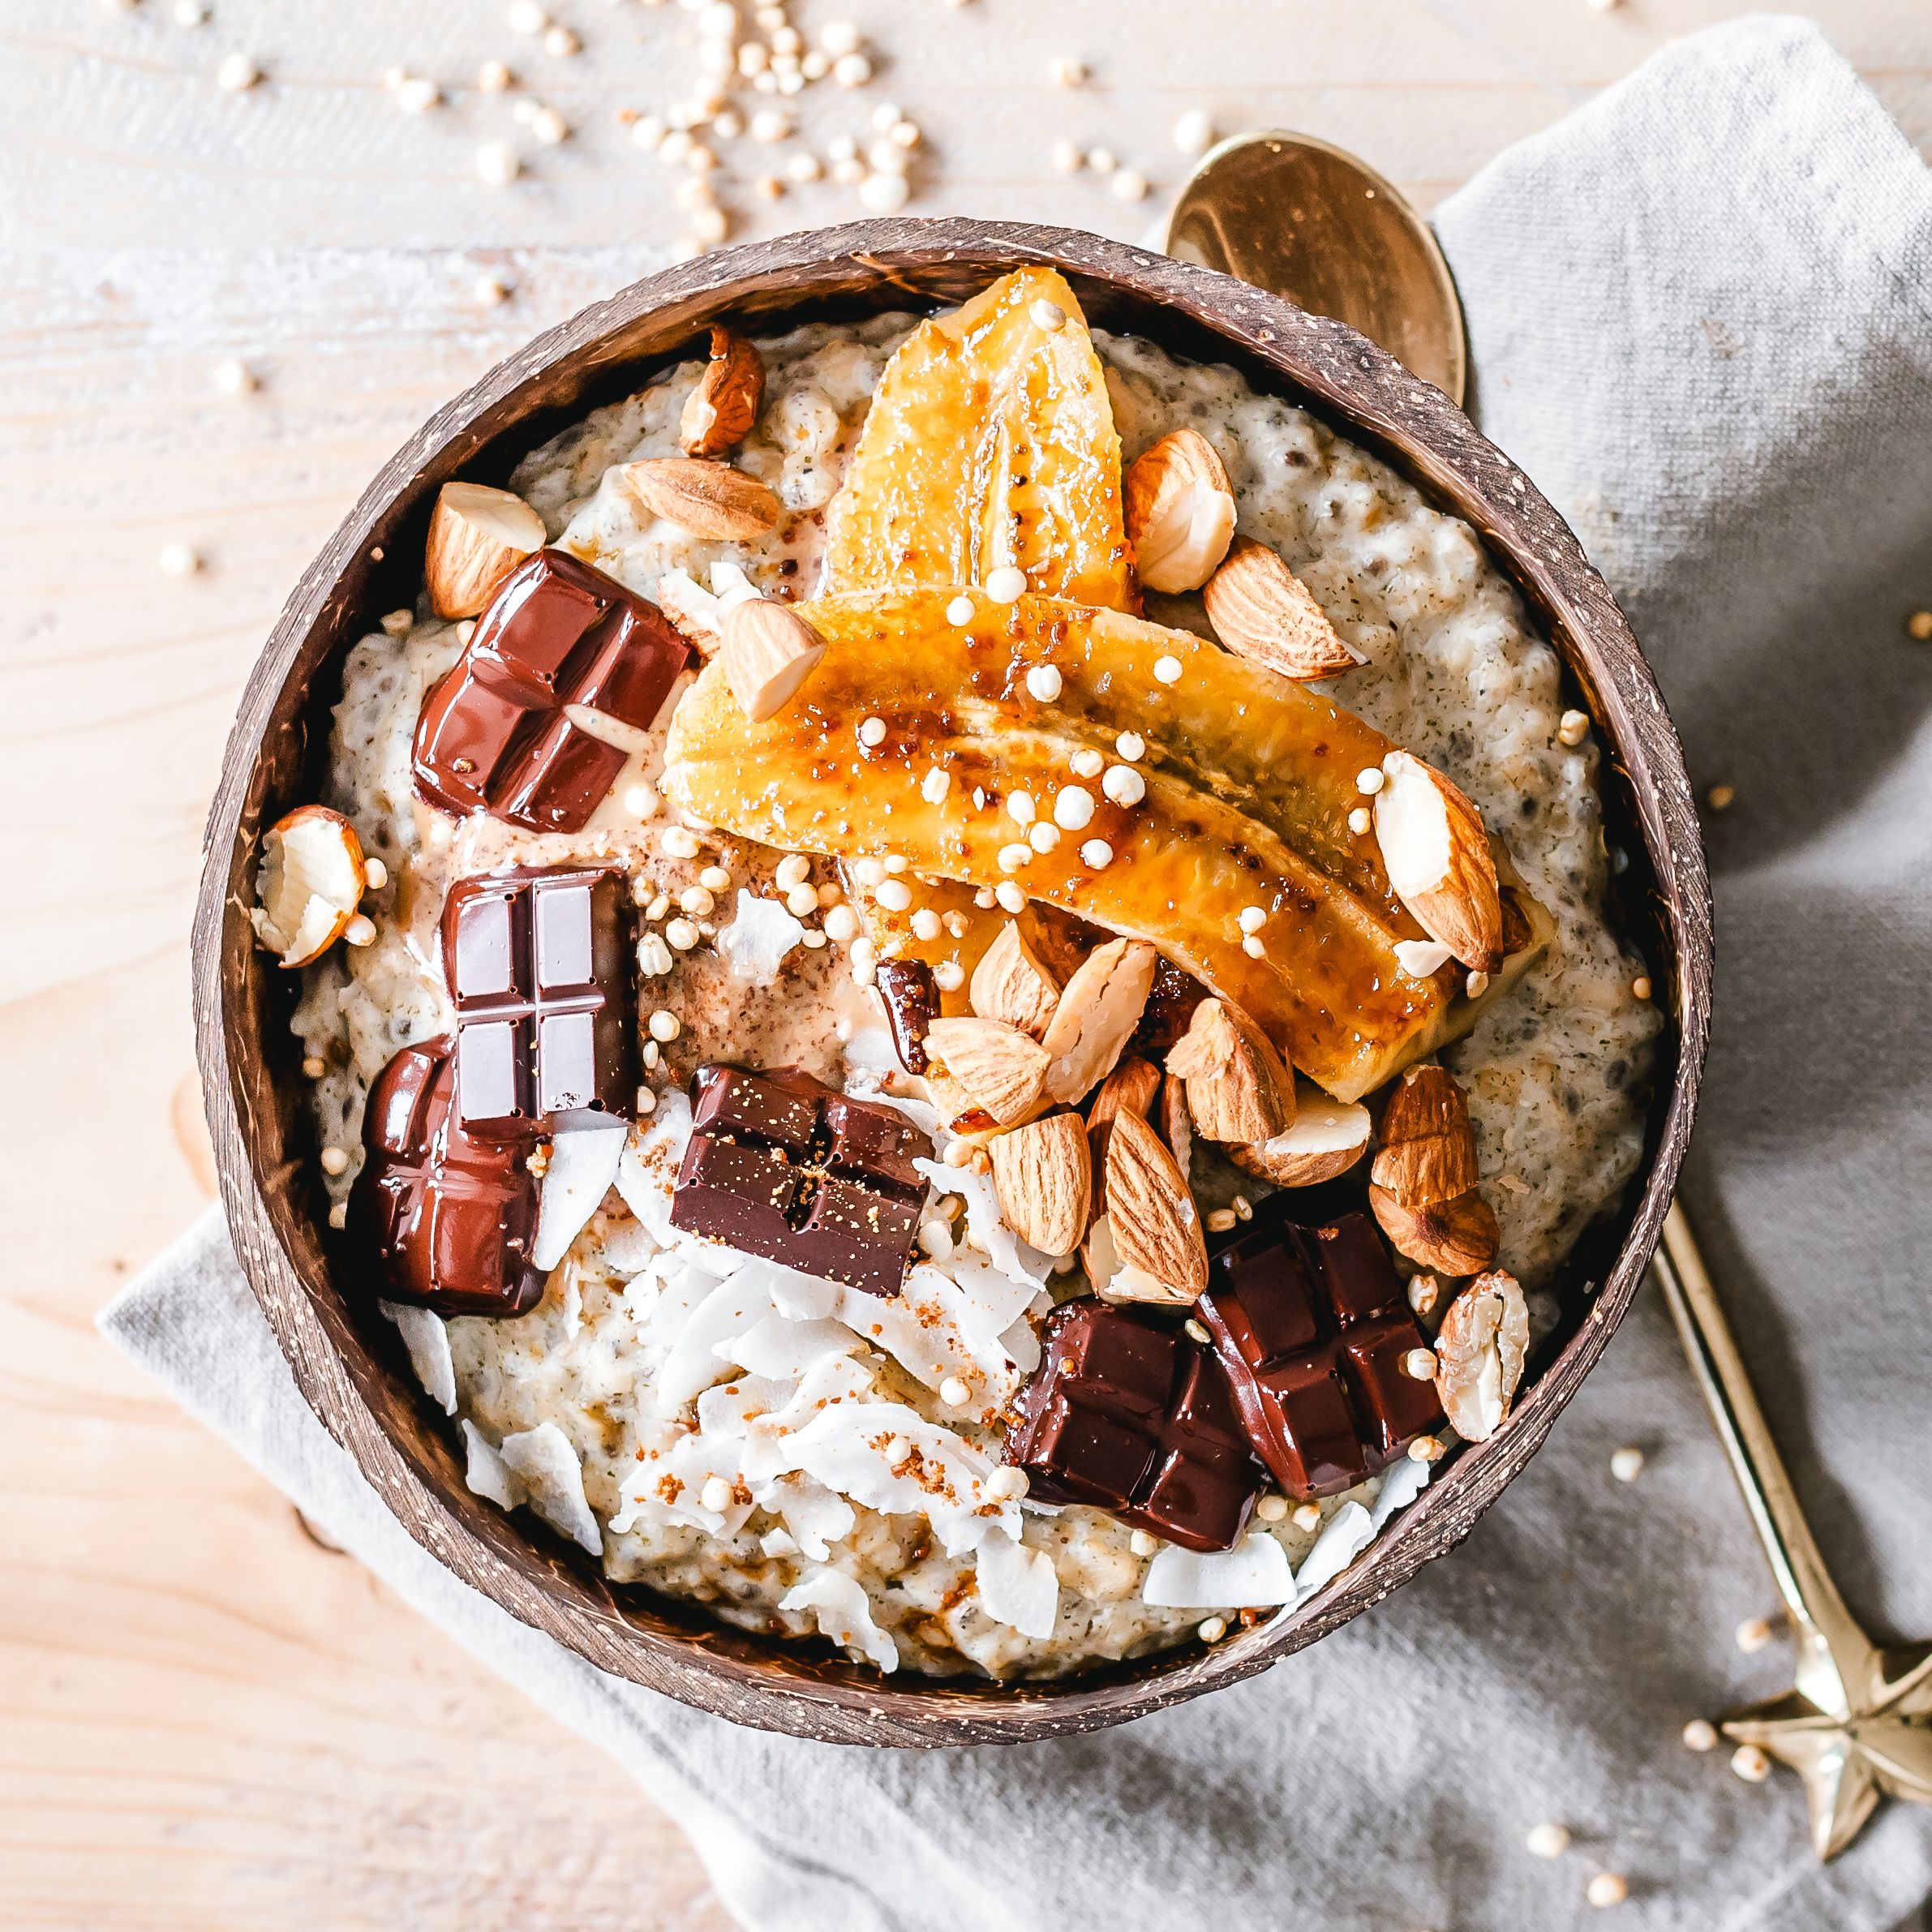 The 30 Best Healthy Oatmeal Toppings To Fill You Up, According To Nutritionists